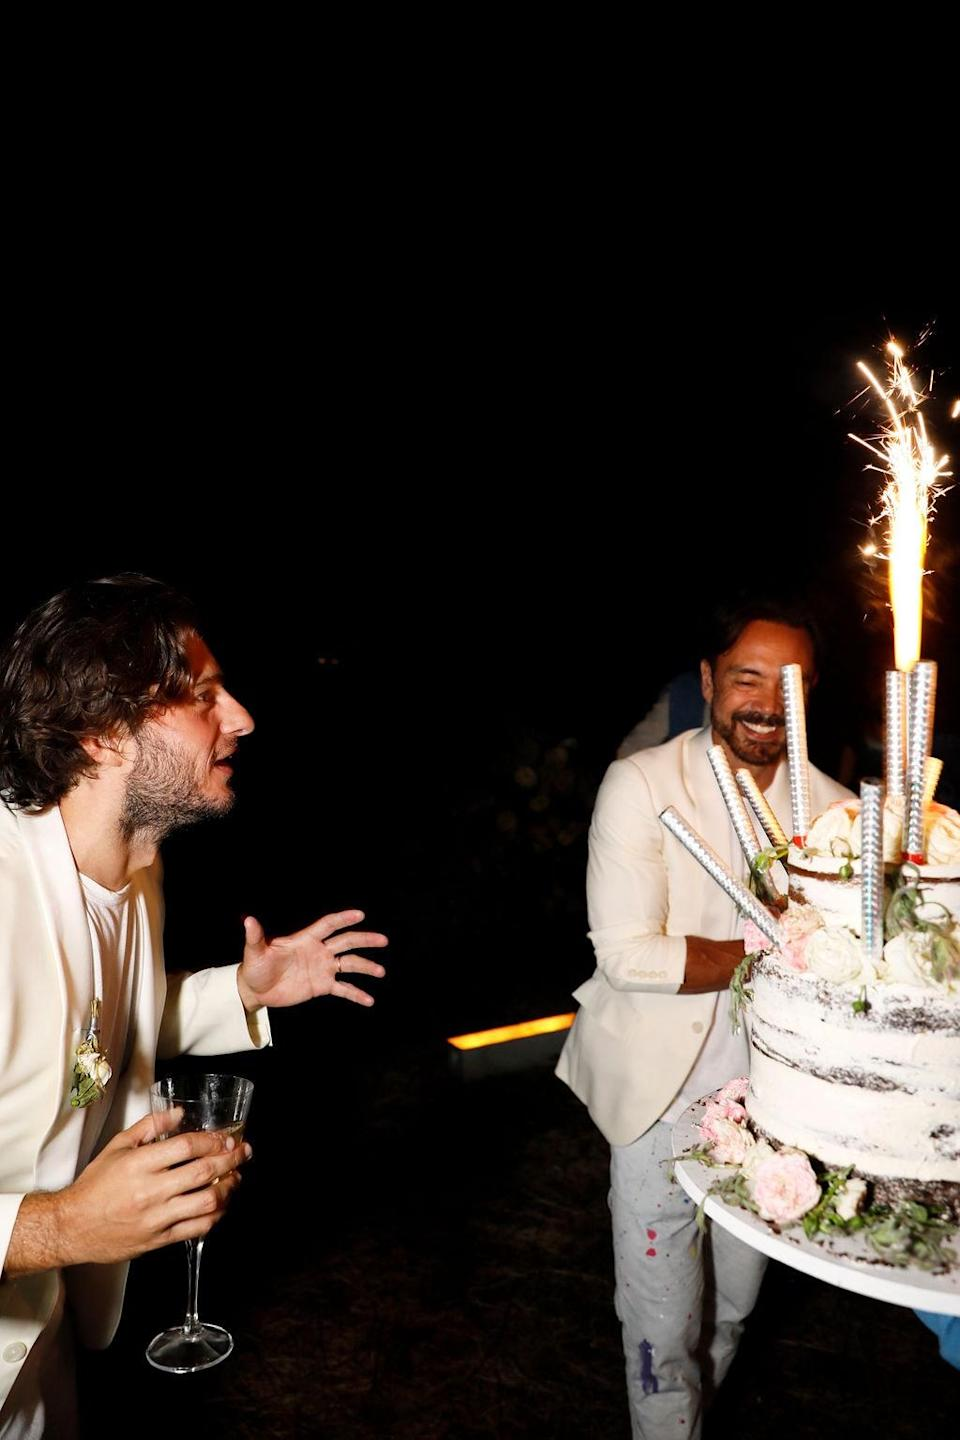 """""""At this point, I think I was so caught up in the moment and enjoying everyone's company, I had forgotten a cake was even a part of the wedding,"""" Nicholas admits. """"So I'm sure this is capturing my genuine surprise and enthusiasm."""""""